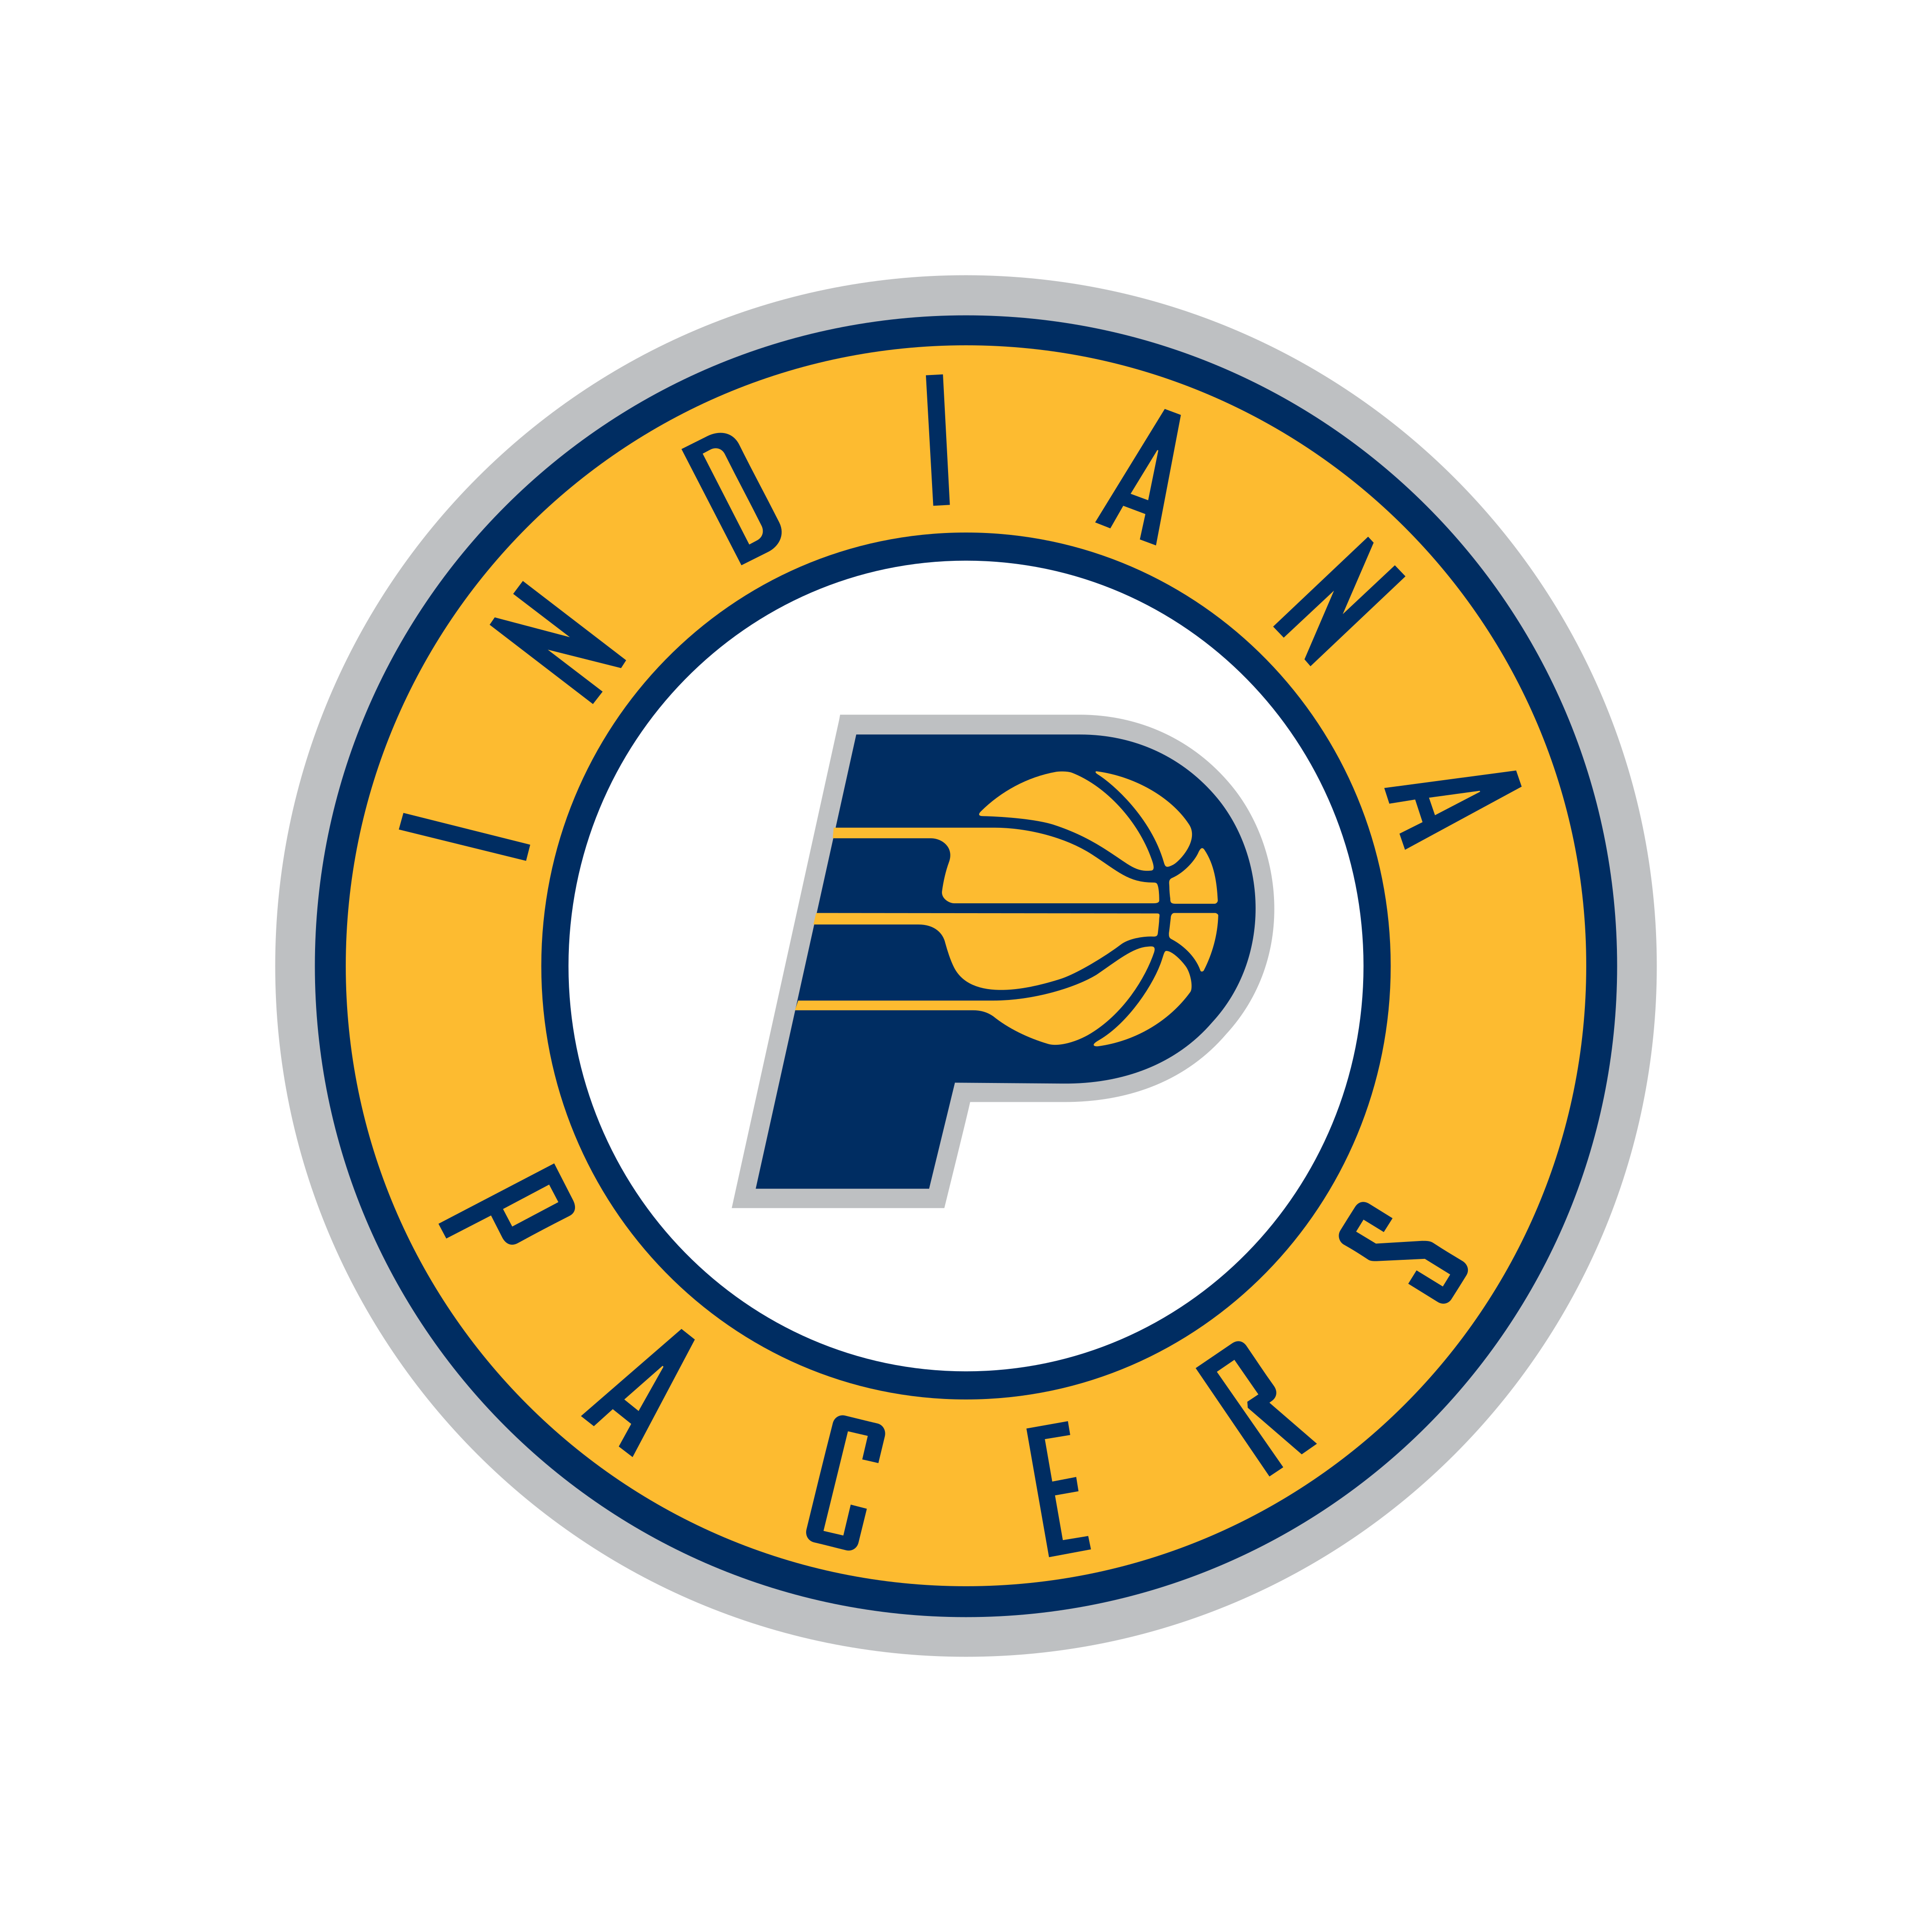 indiana pacers logo 0 - Indiana Pacers Logo